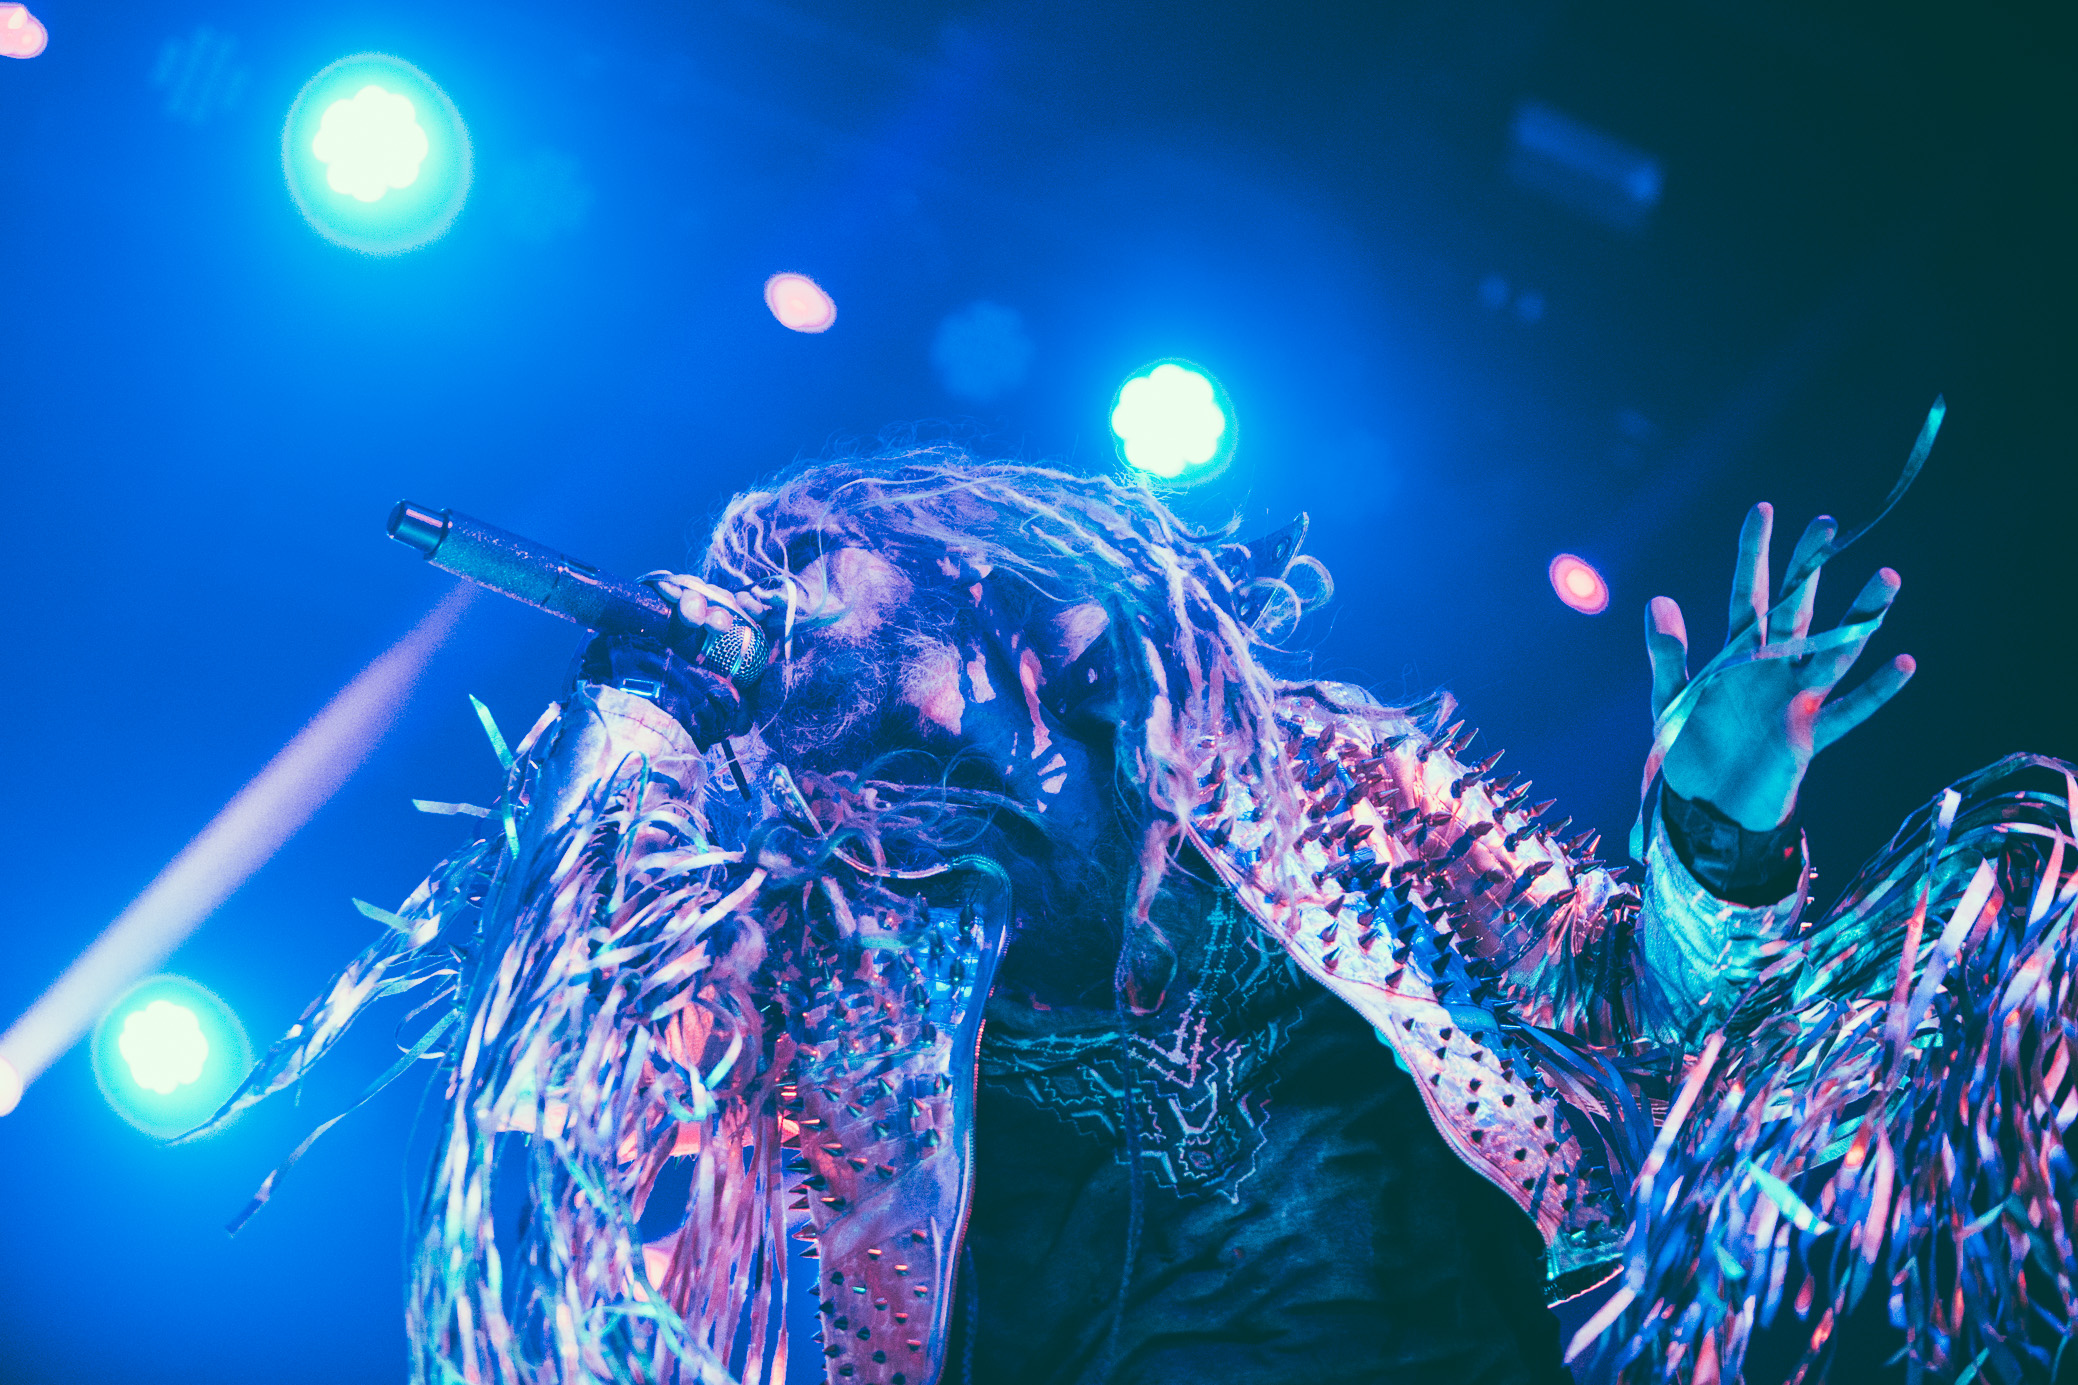 Rob Zombie performs in concert at the Coca-Cola Roxy in Atlanta, Georgia on October 3rd, 2017. (Photo by David A. Smith/DSmithScenes)